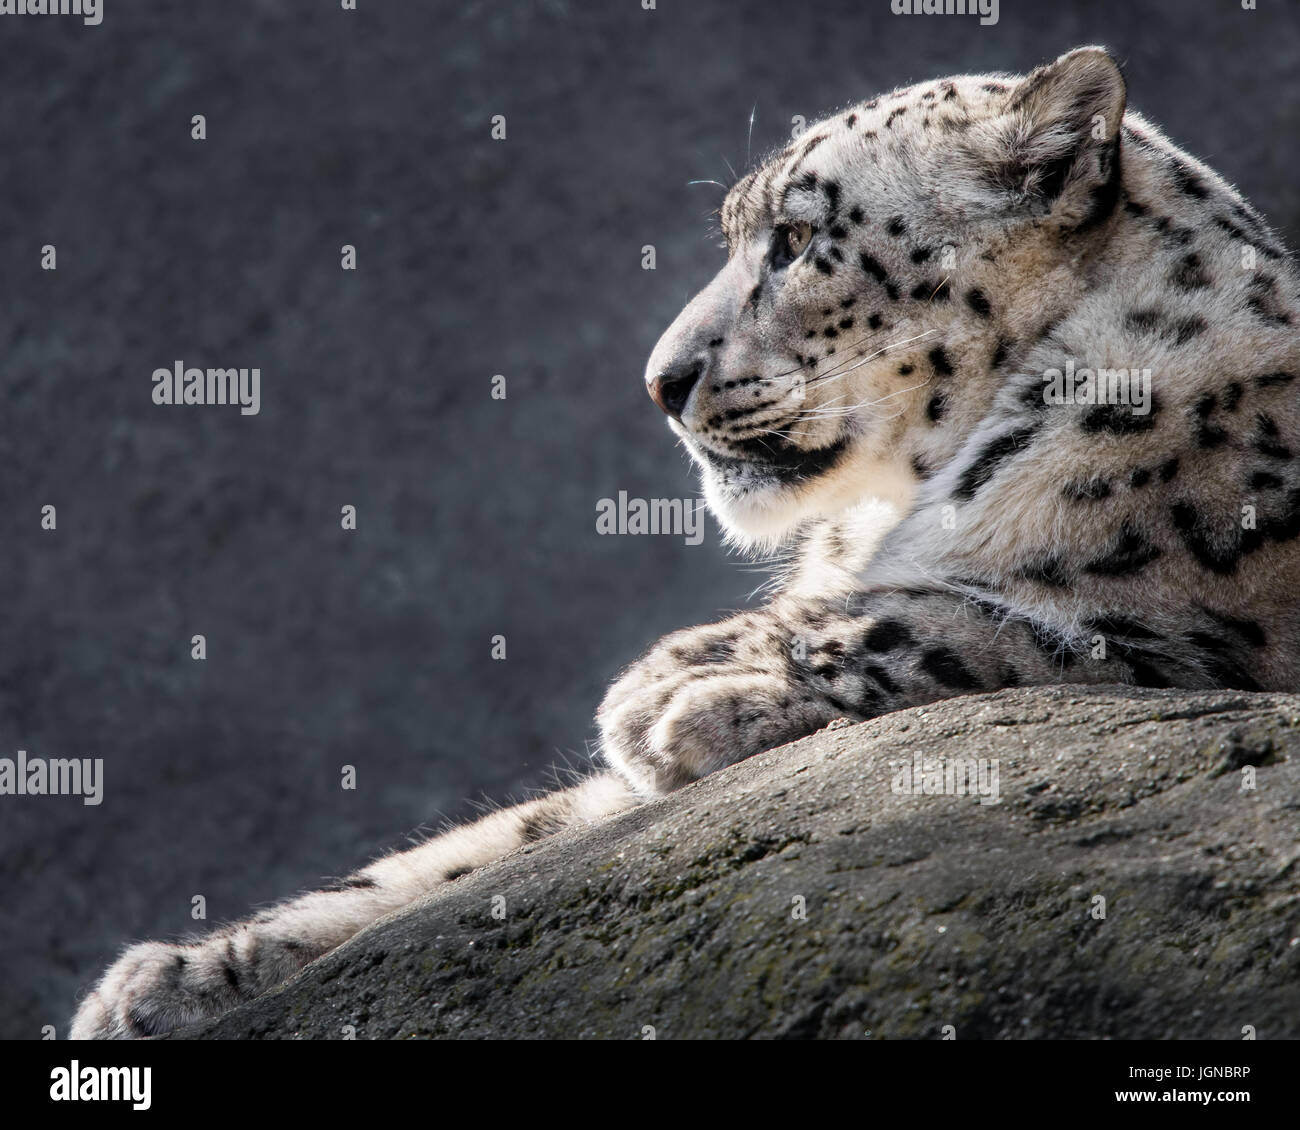 Profile Portrait of a Snow Leopard Against a Mottled Gray Background - Stock Image